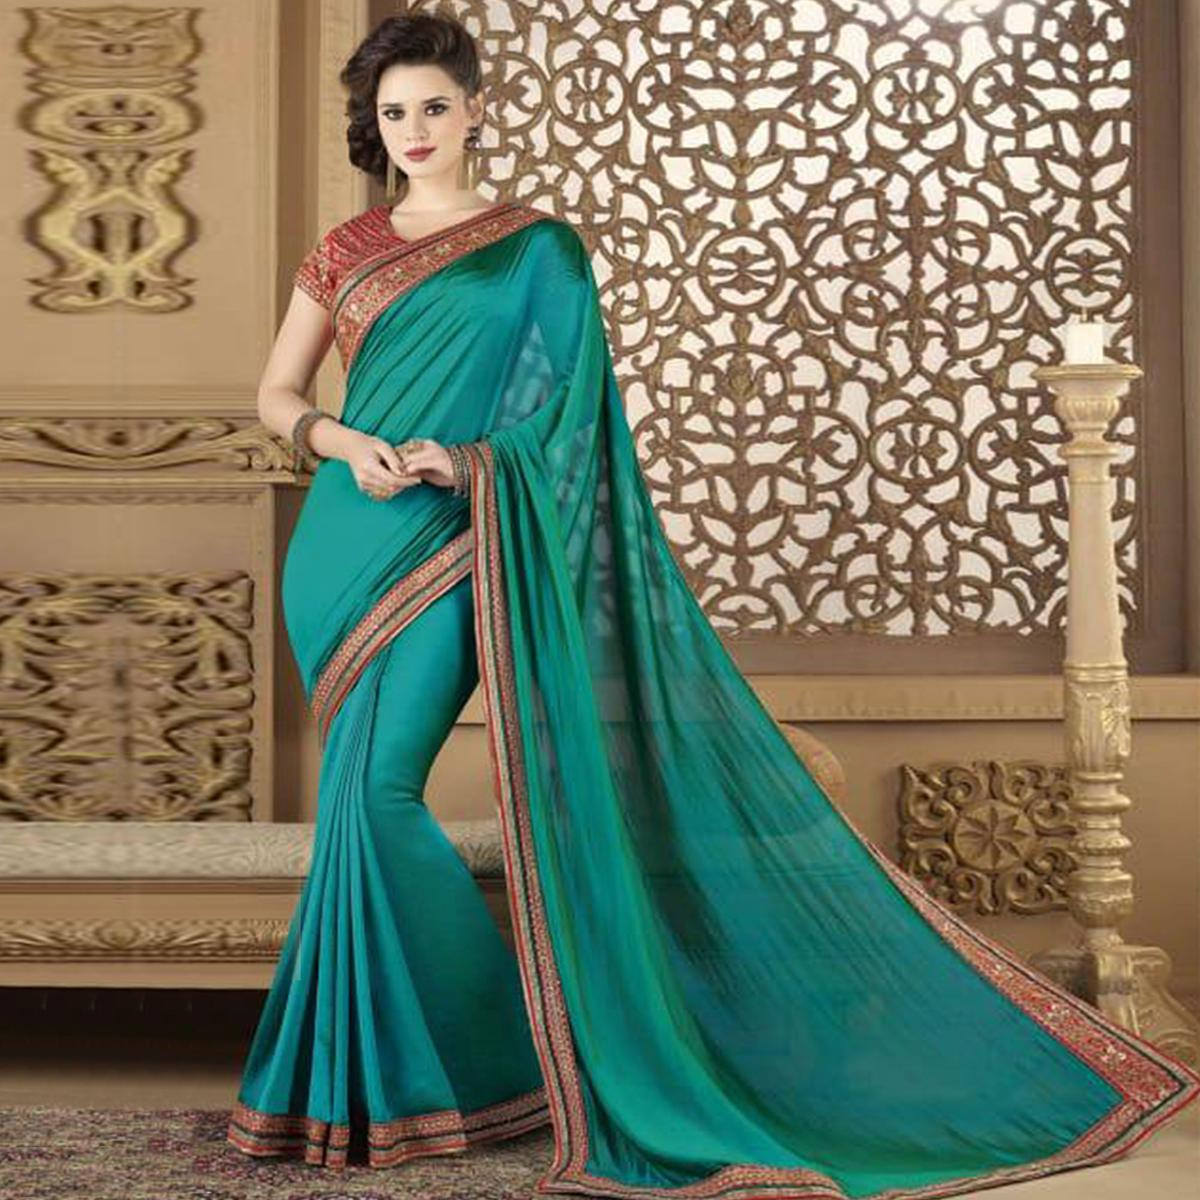 Desirable Teal Blue Colored Partywear Embroidered Silk Saree.